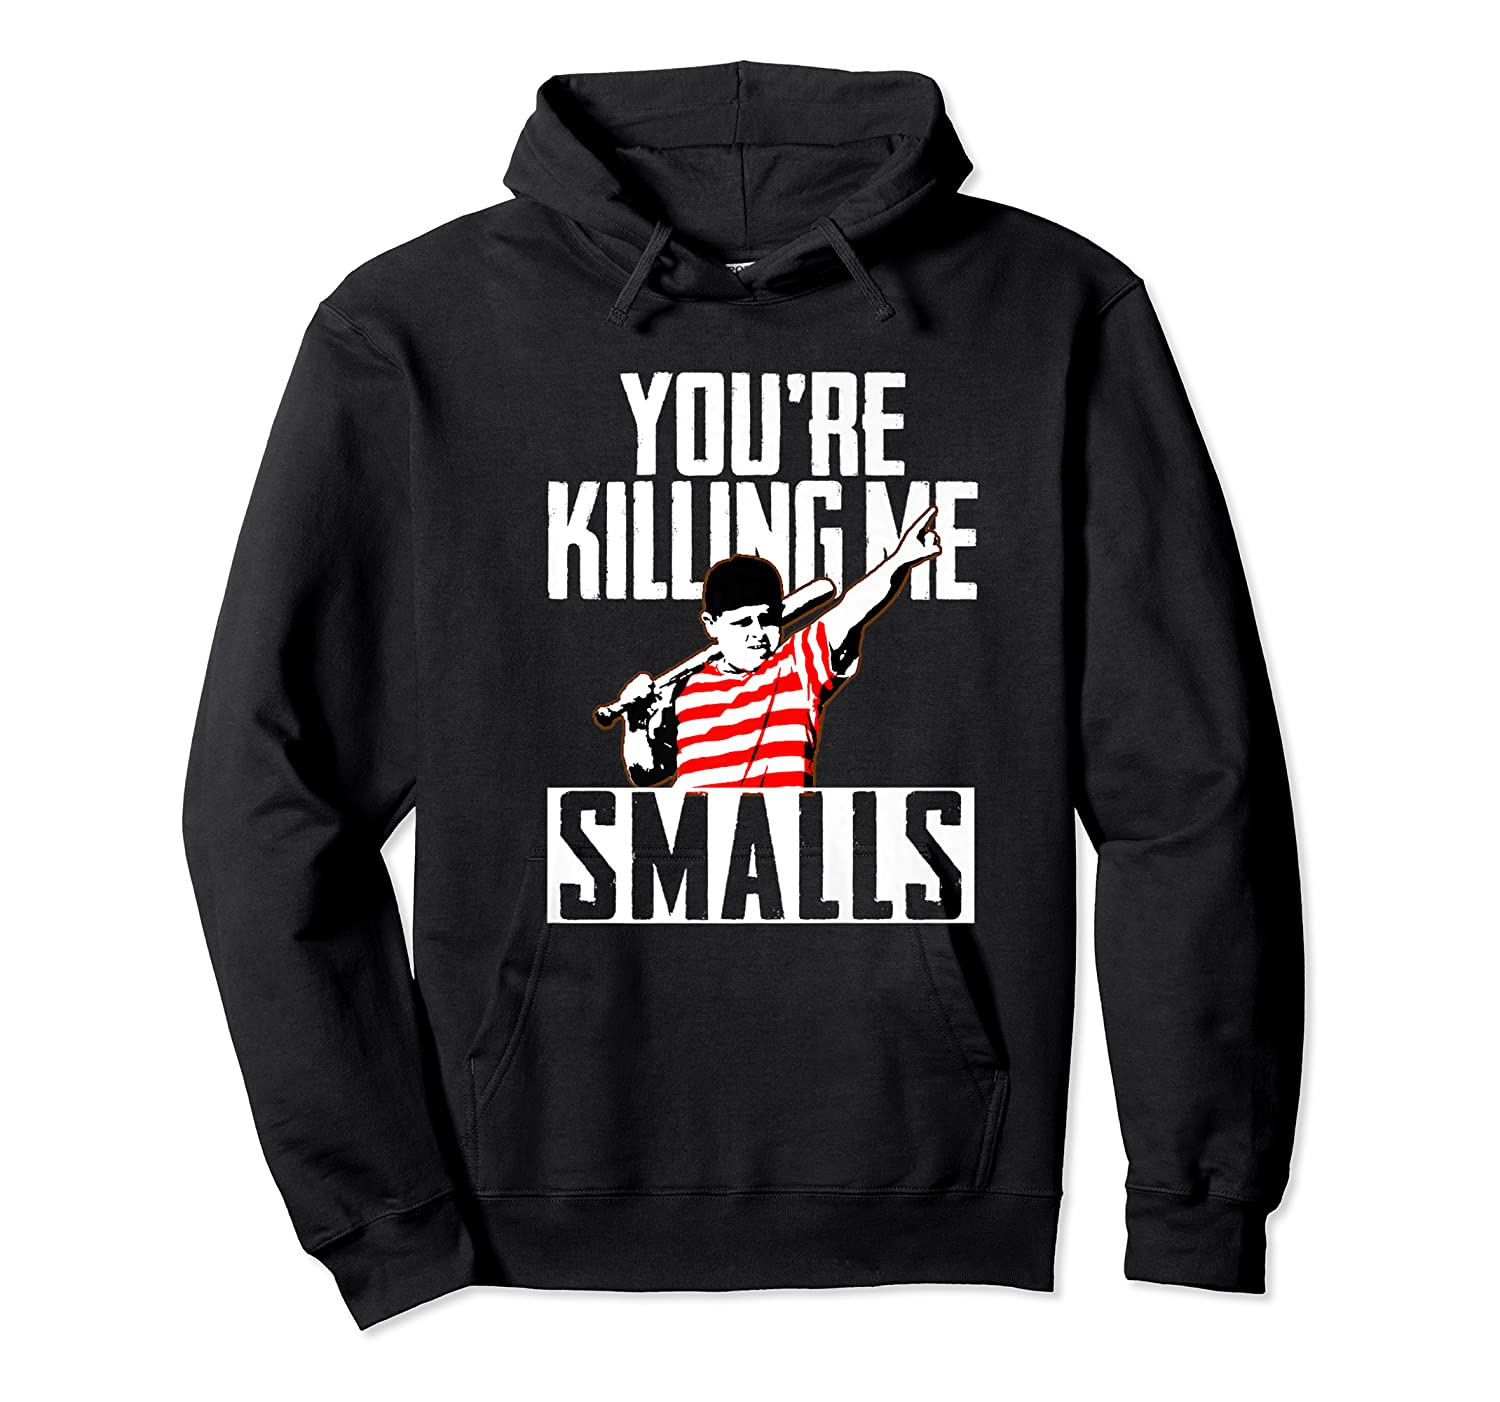 Your Killing Me S Softball For You Re Father Son Shirts Unisex Pullover Hoodie